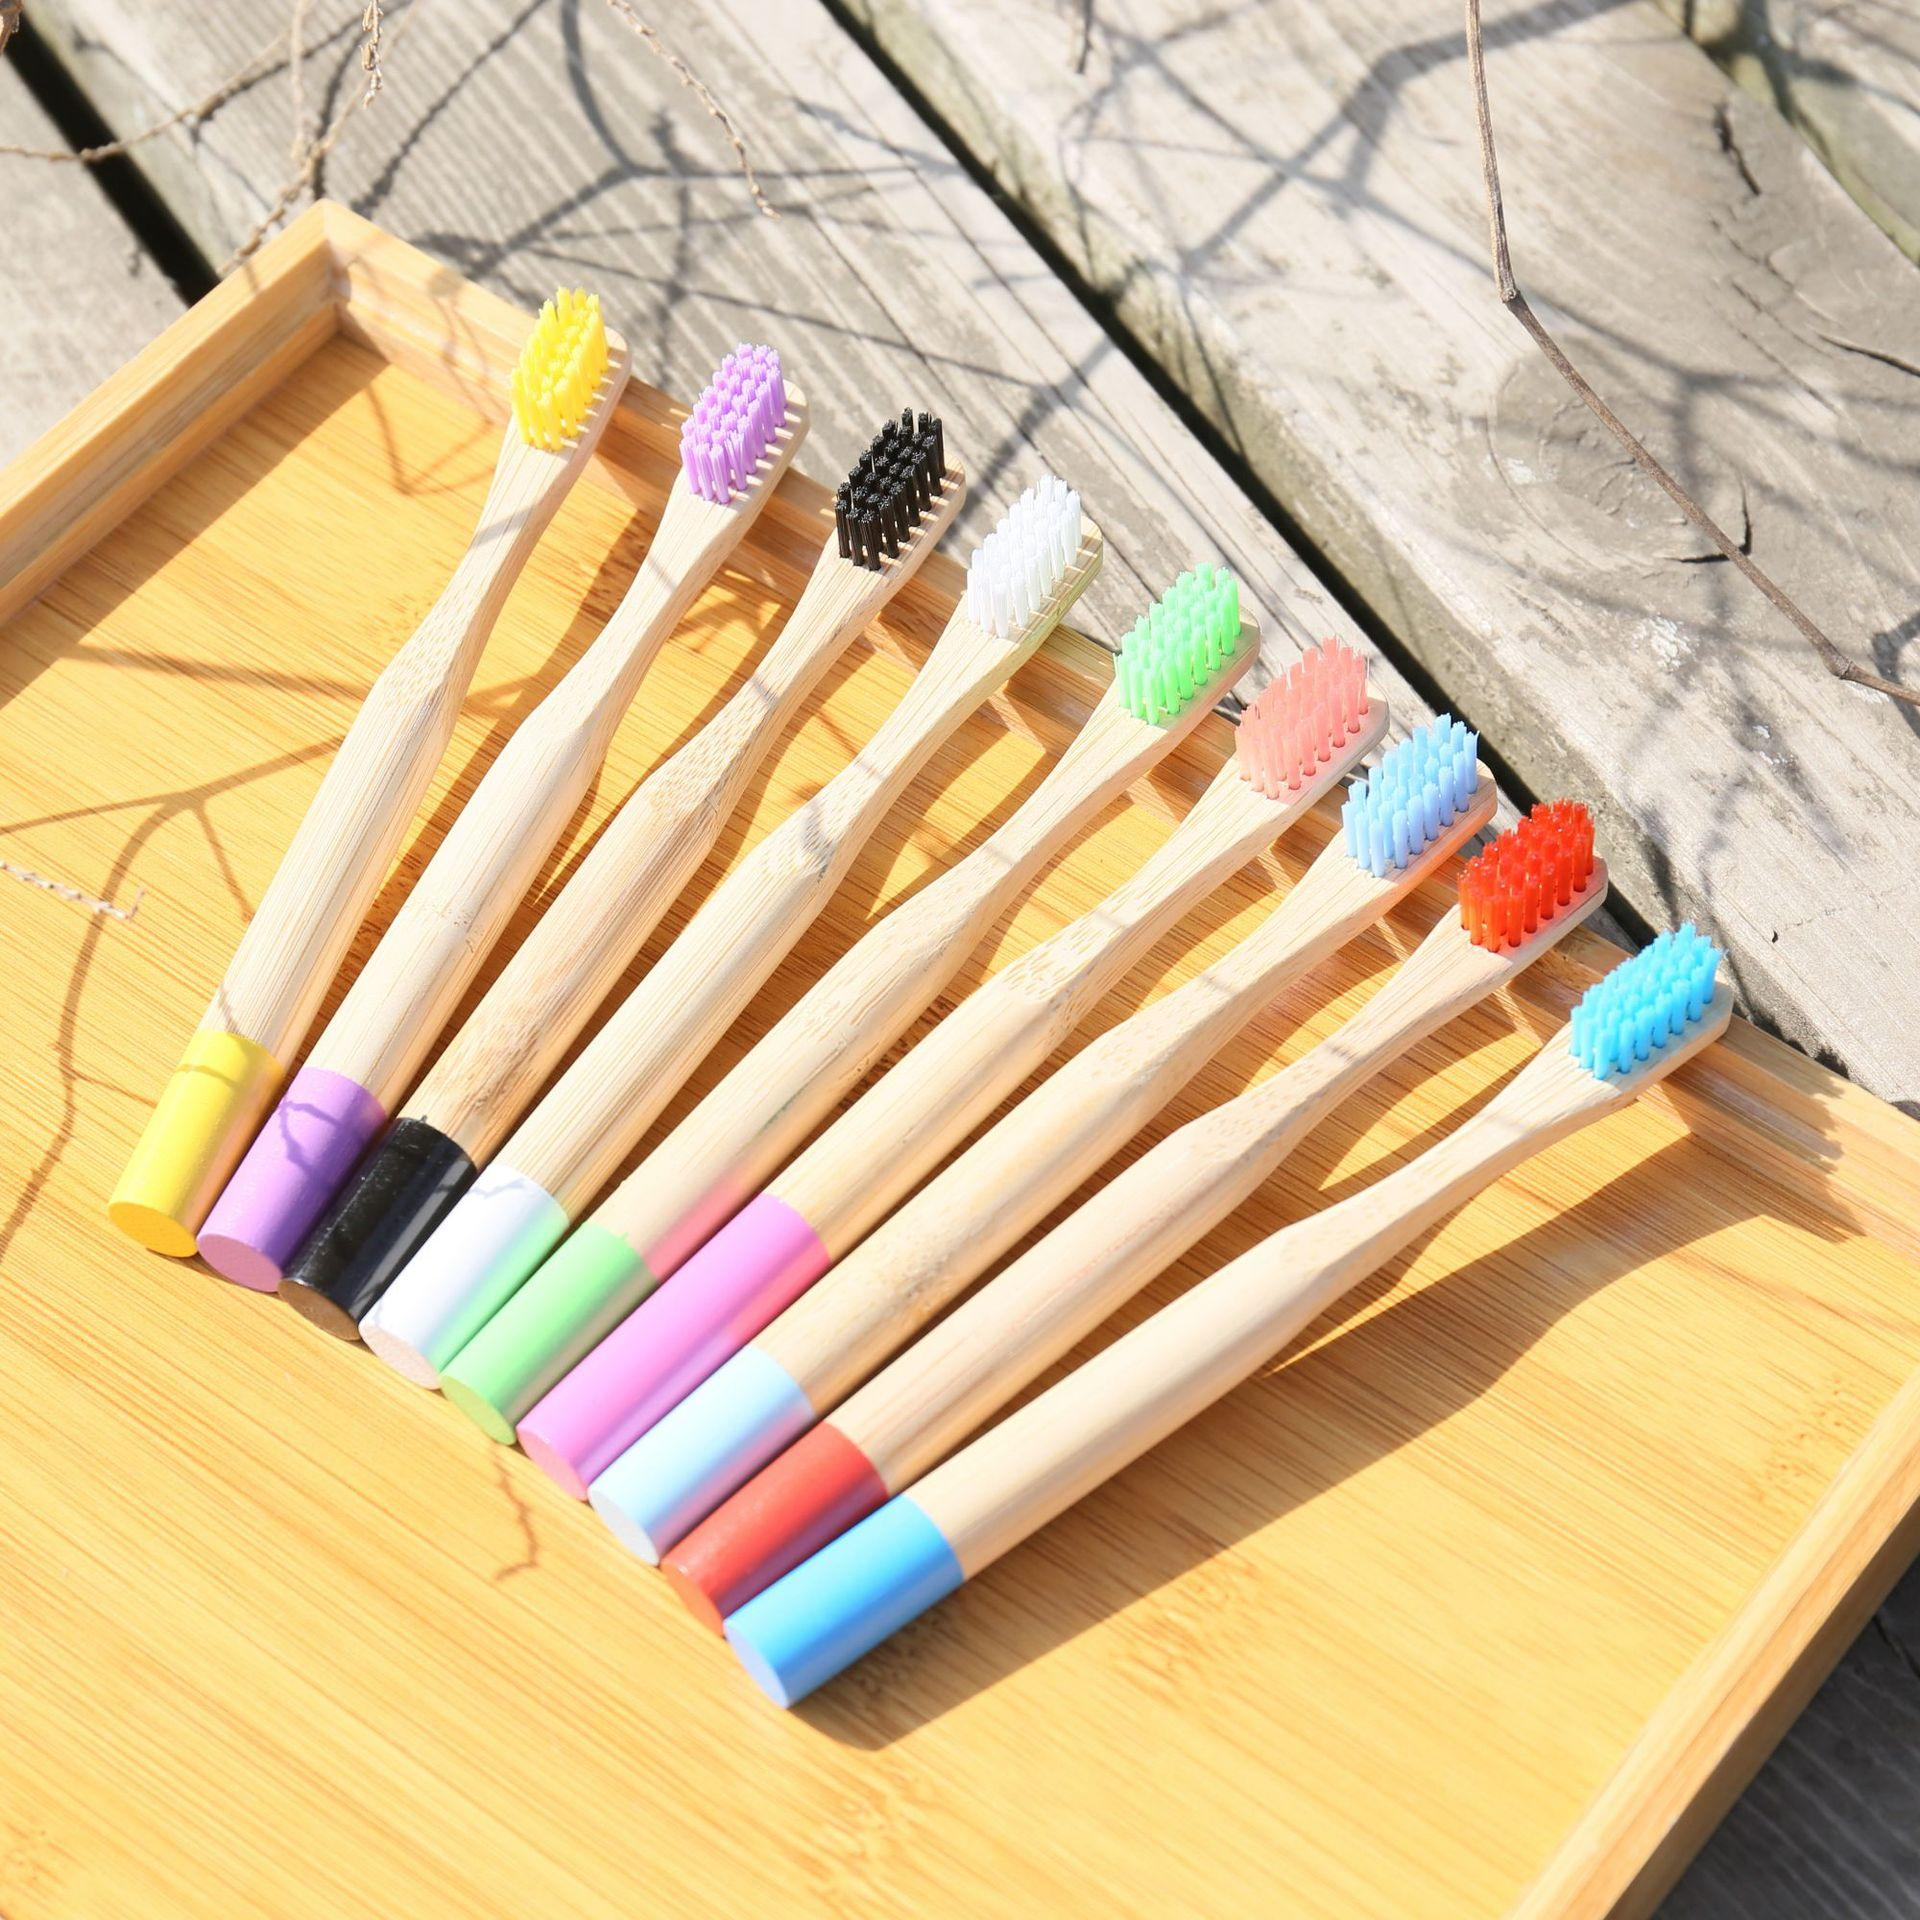 Children Bamboo Toothbrush Round Handle Toothbrushes Natural Bamboo Tube Brush With Box Packing Travel Oral Hygiene Hotel Supplies GGA2475